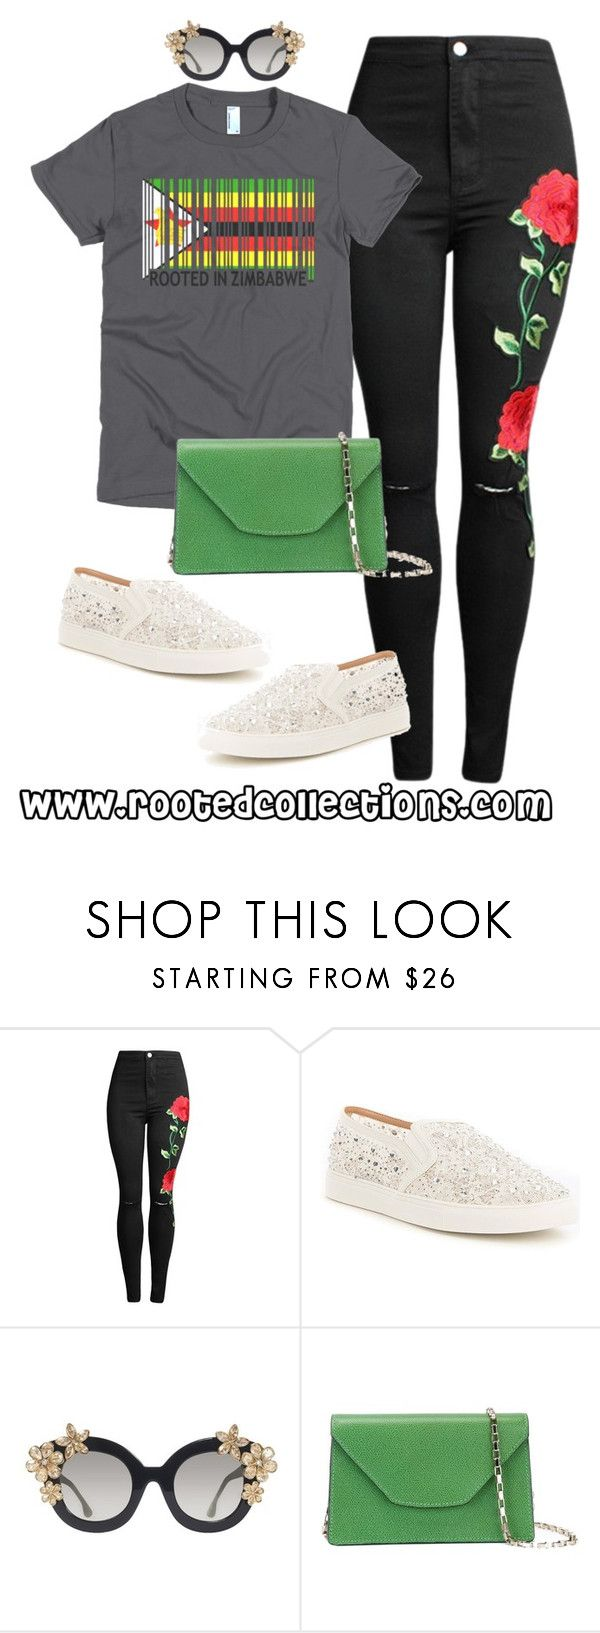 """""""rooted collections - OOTD #43"""" by rootedcollections on Polyvore featuring Antonio Melani, Alice + Olivia, Valextra, ootd and zimbabwe"""